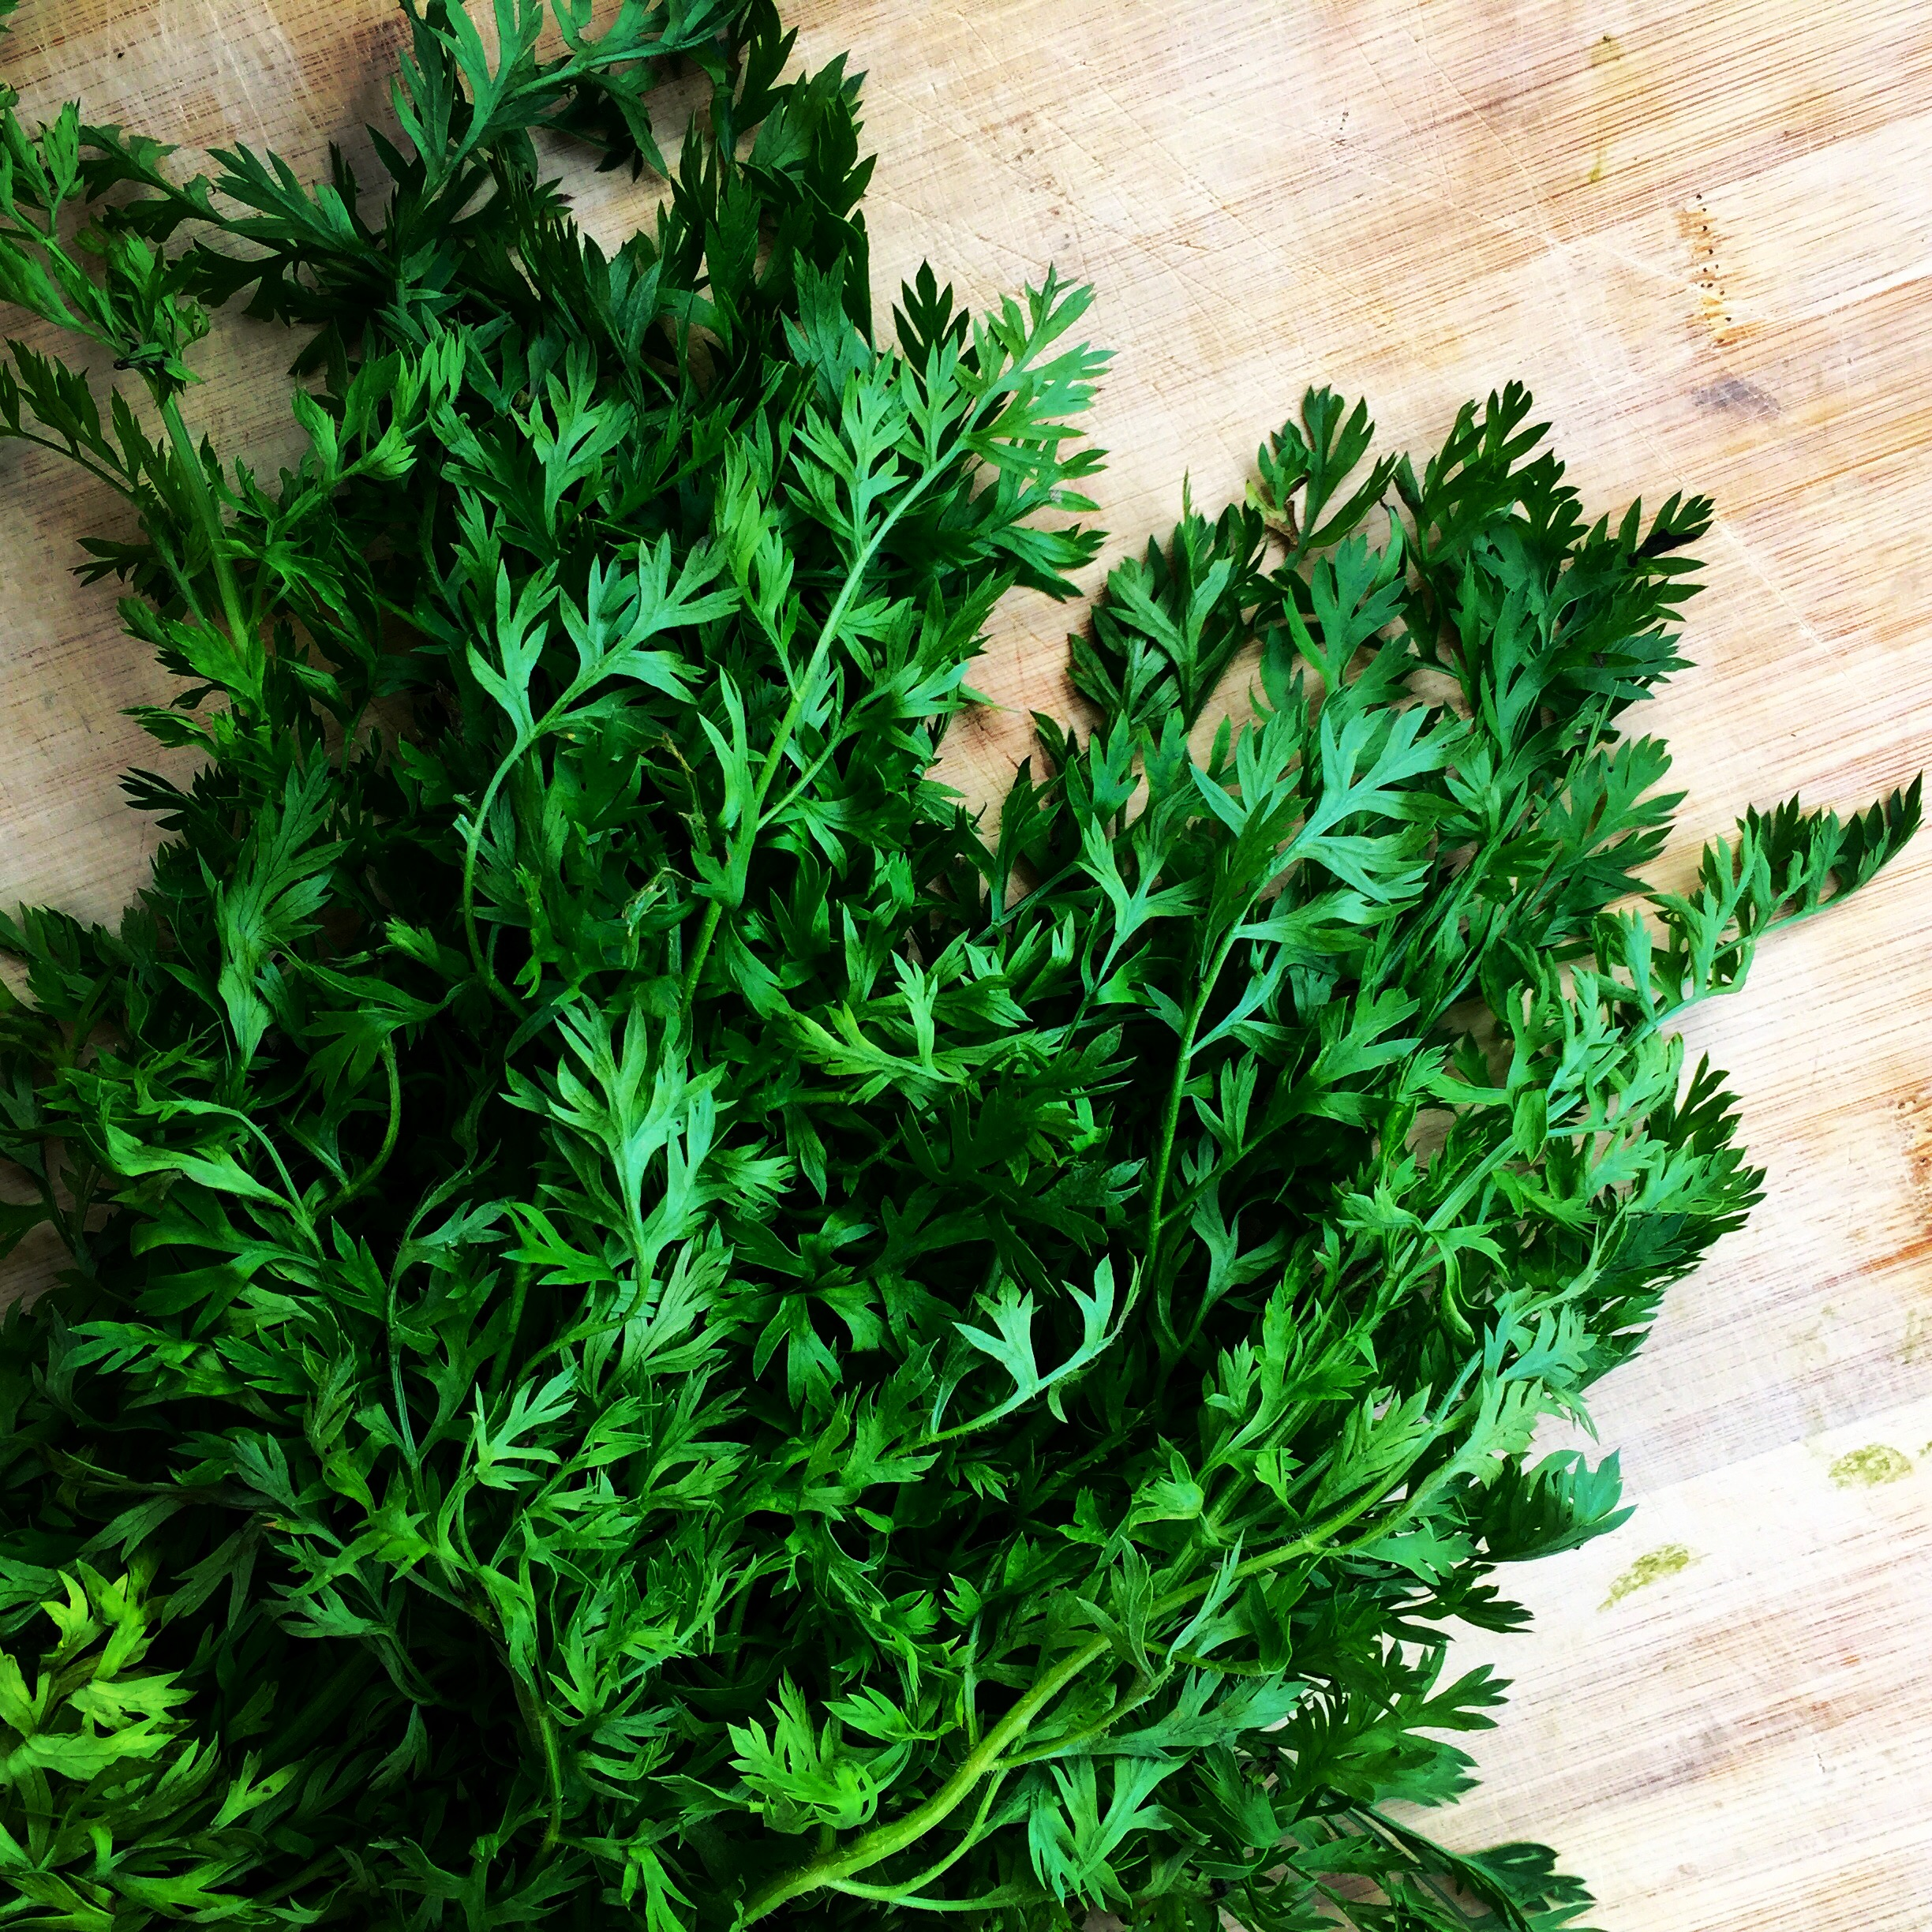 Carrot tops, ready to be minced up and added to dip.